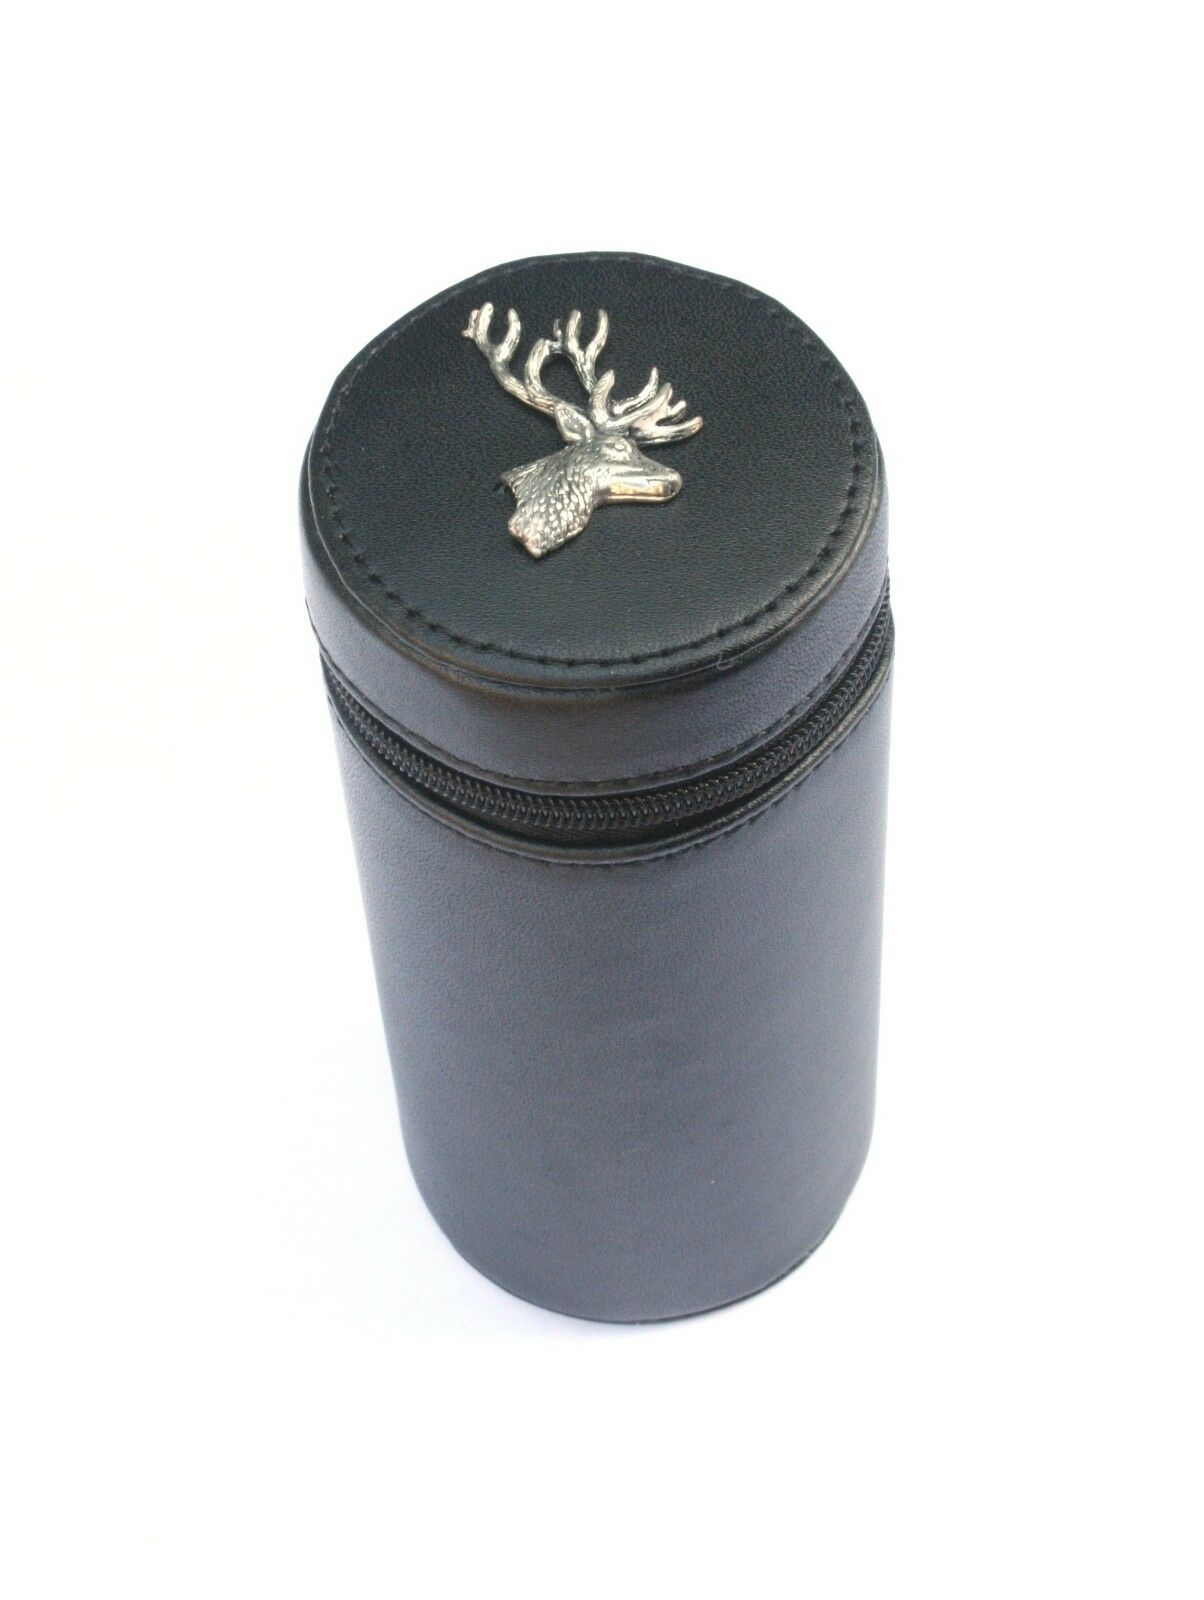 Stag Head Shooting Peg Position Finder Numberojo Cups 1-10 negro Leather Case